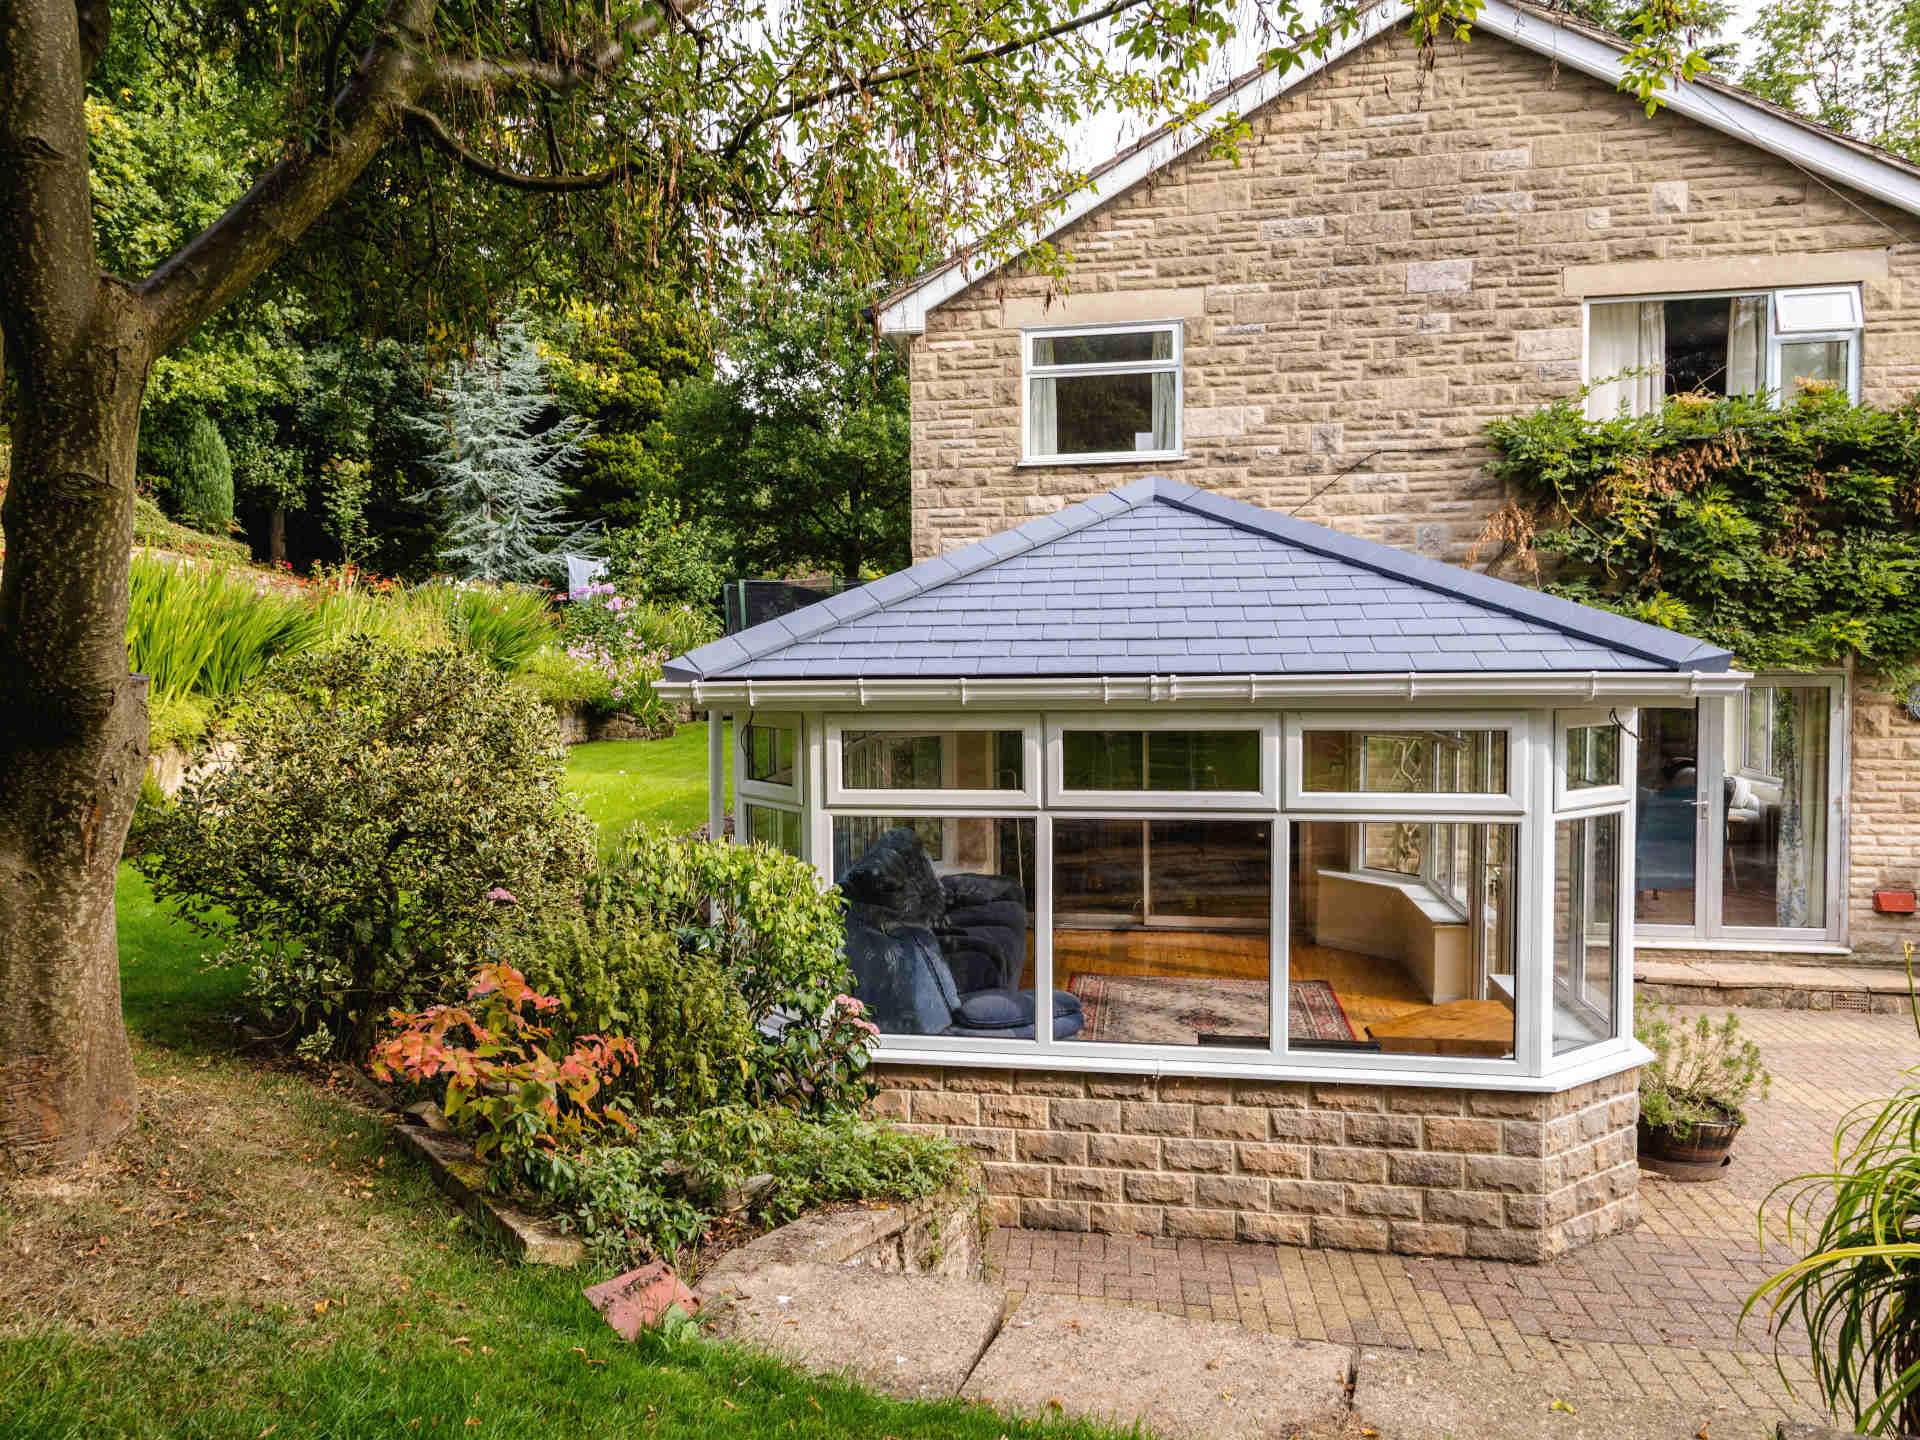 a new conservatory extension on a home